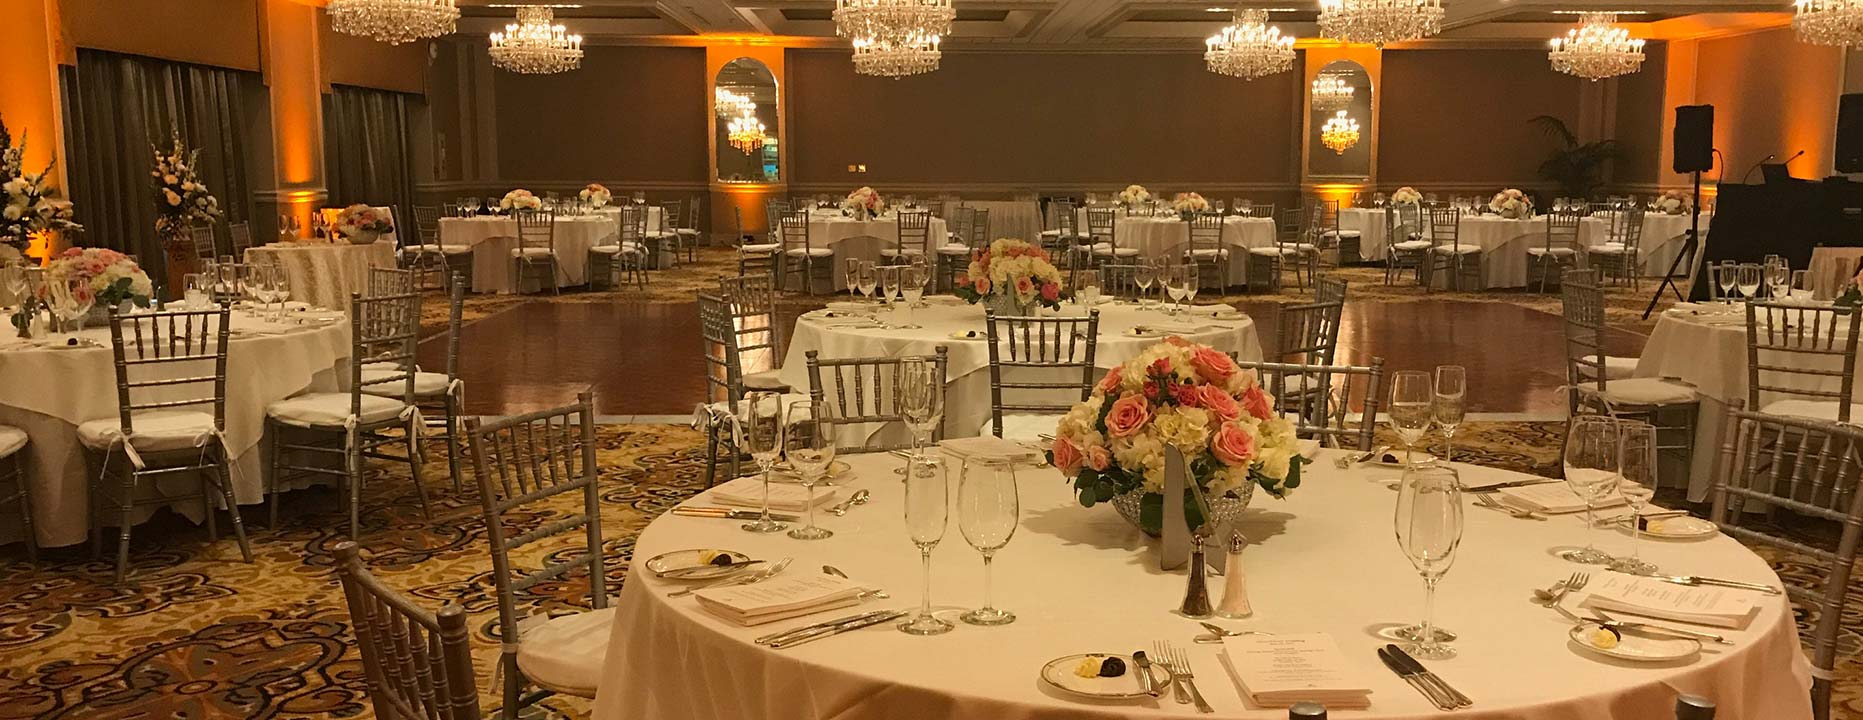 Garden Terrace ballroom at The Hotel Hershey